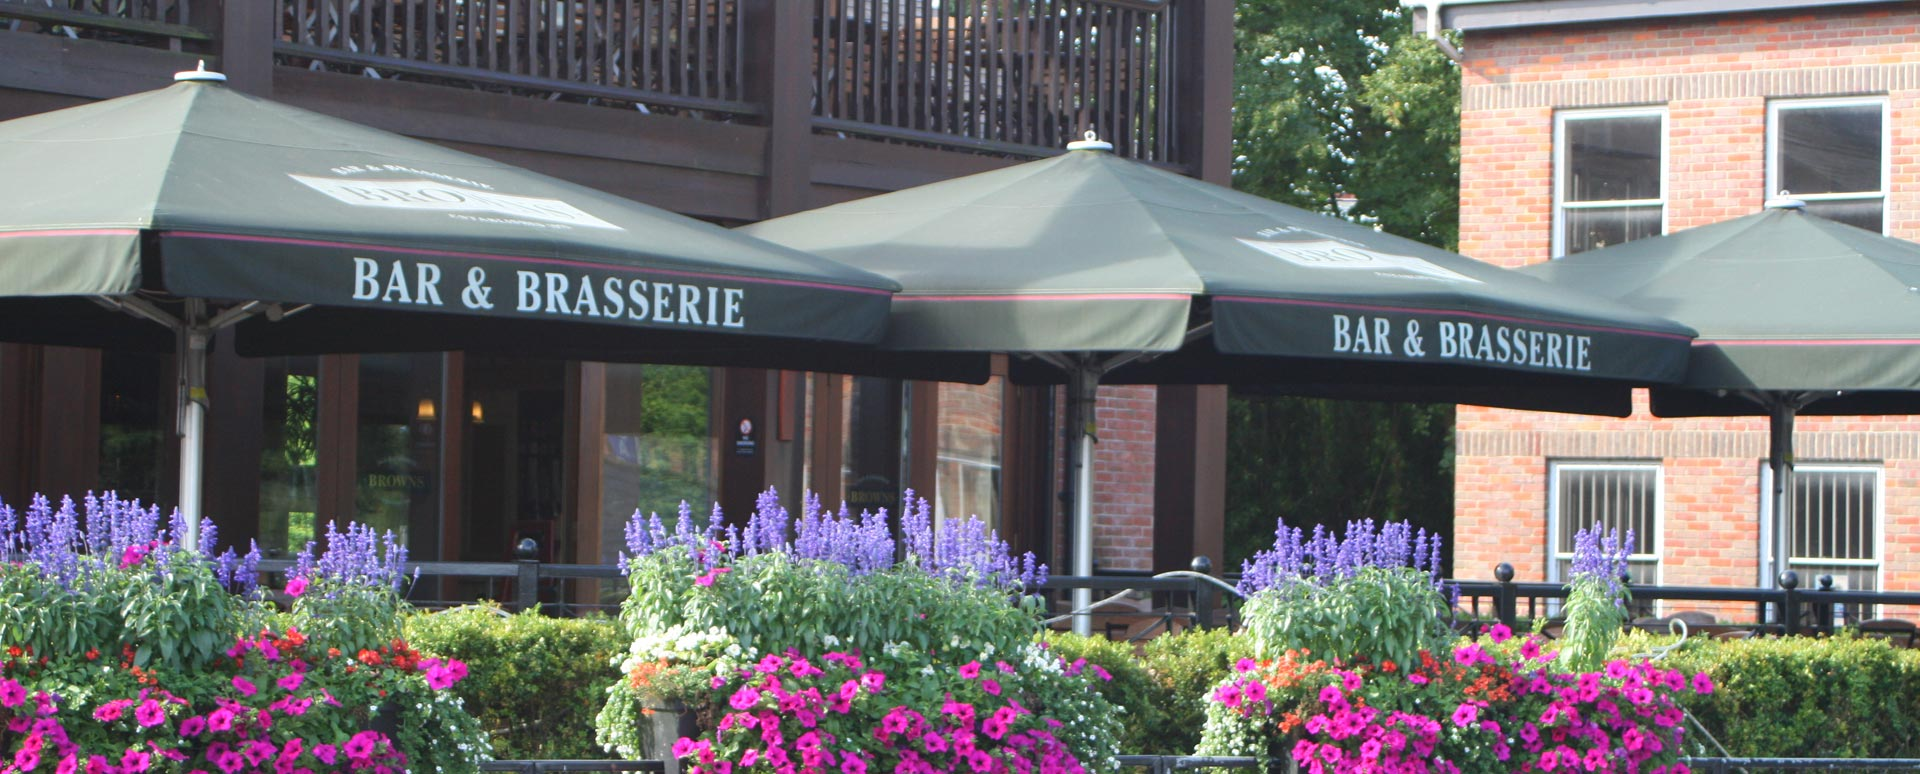 Restaurant in Windsor with beautiful flowers